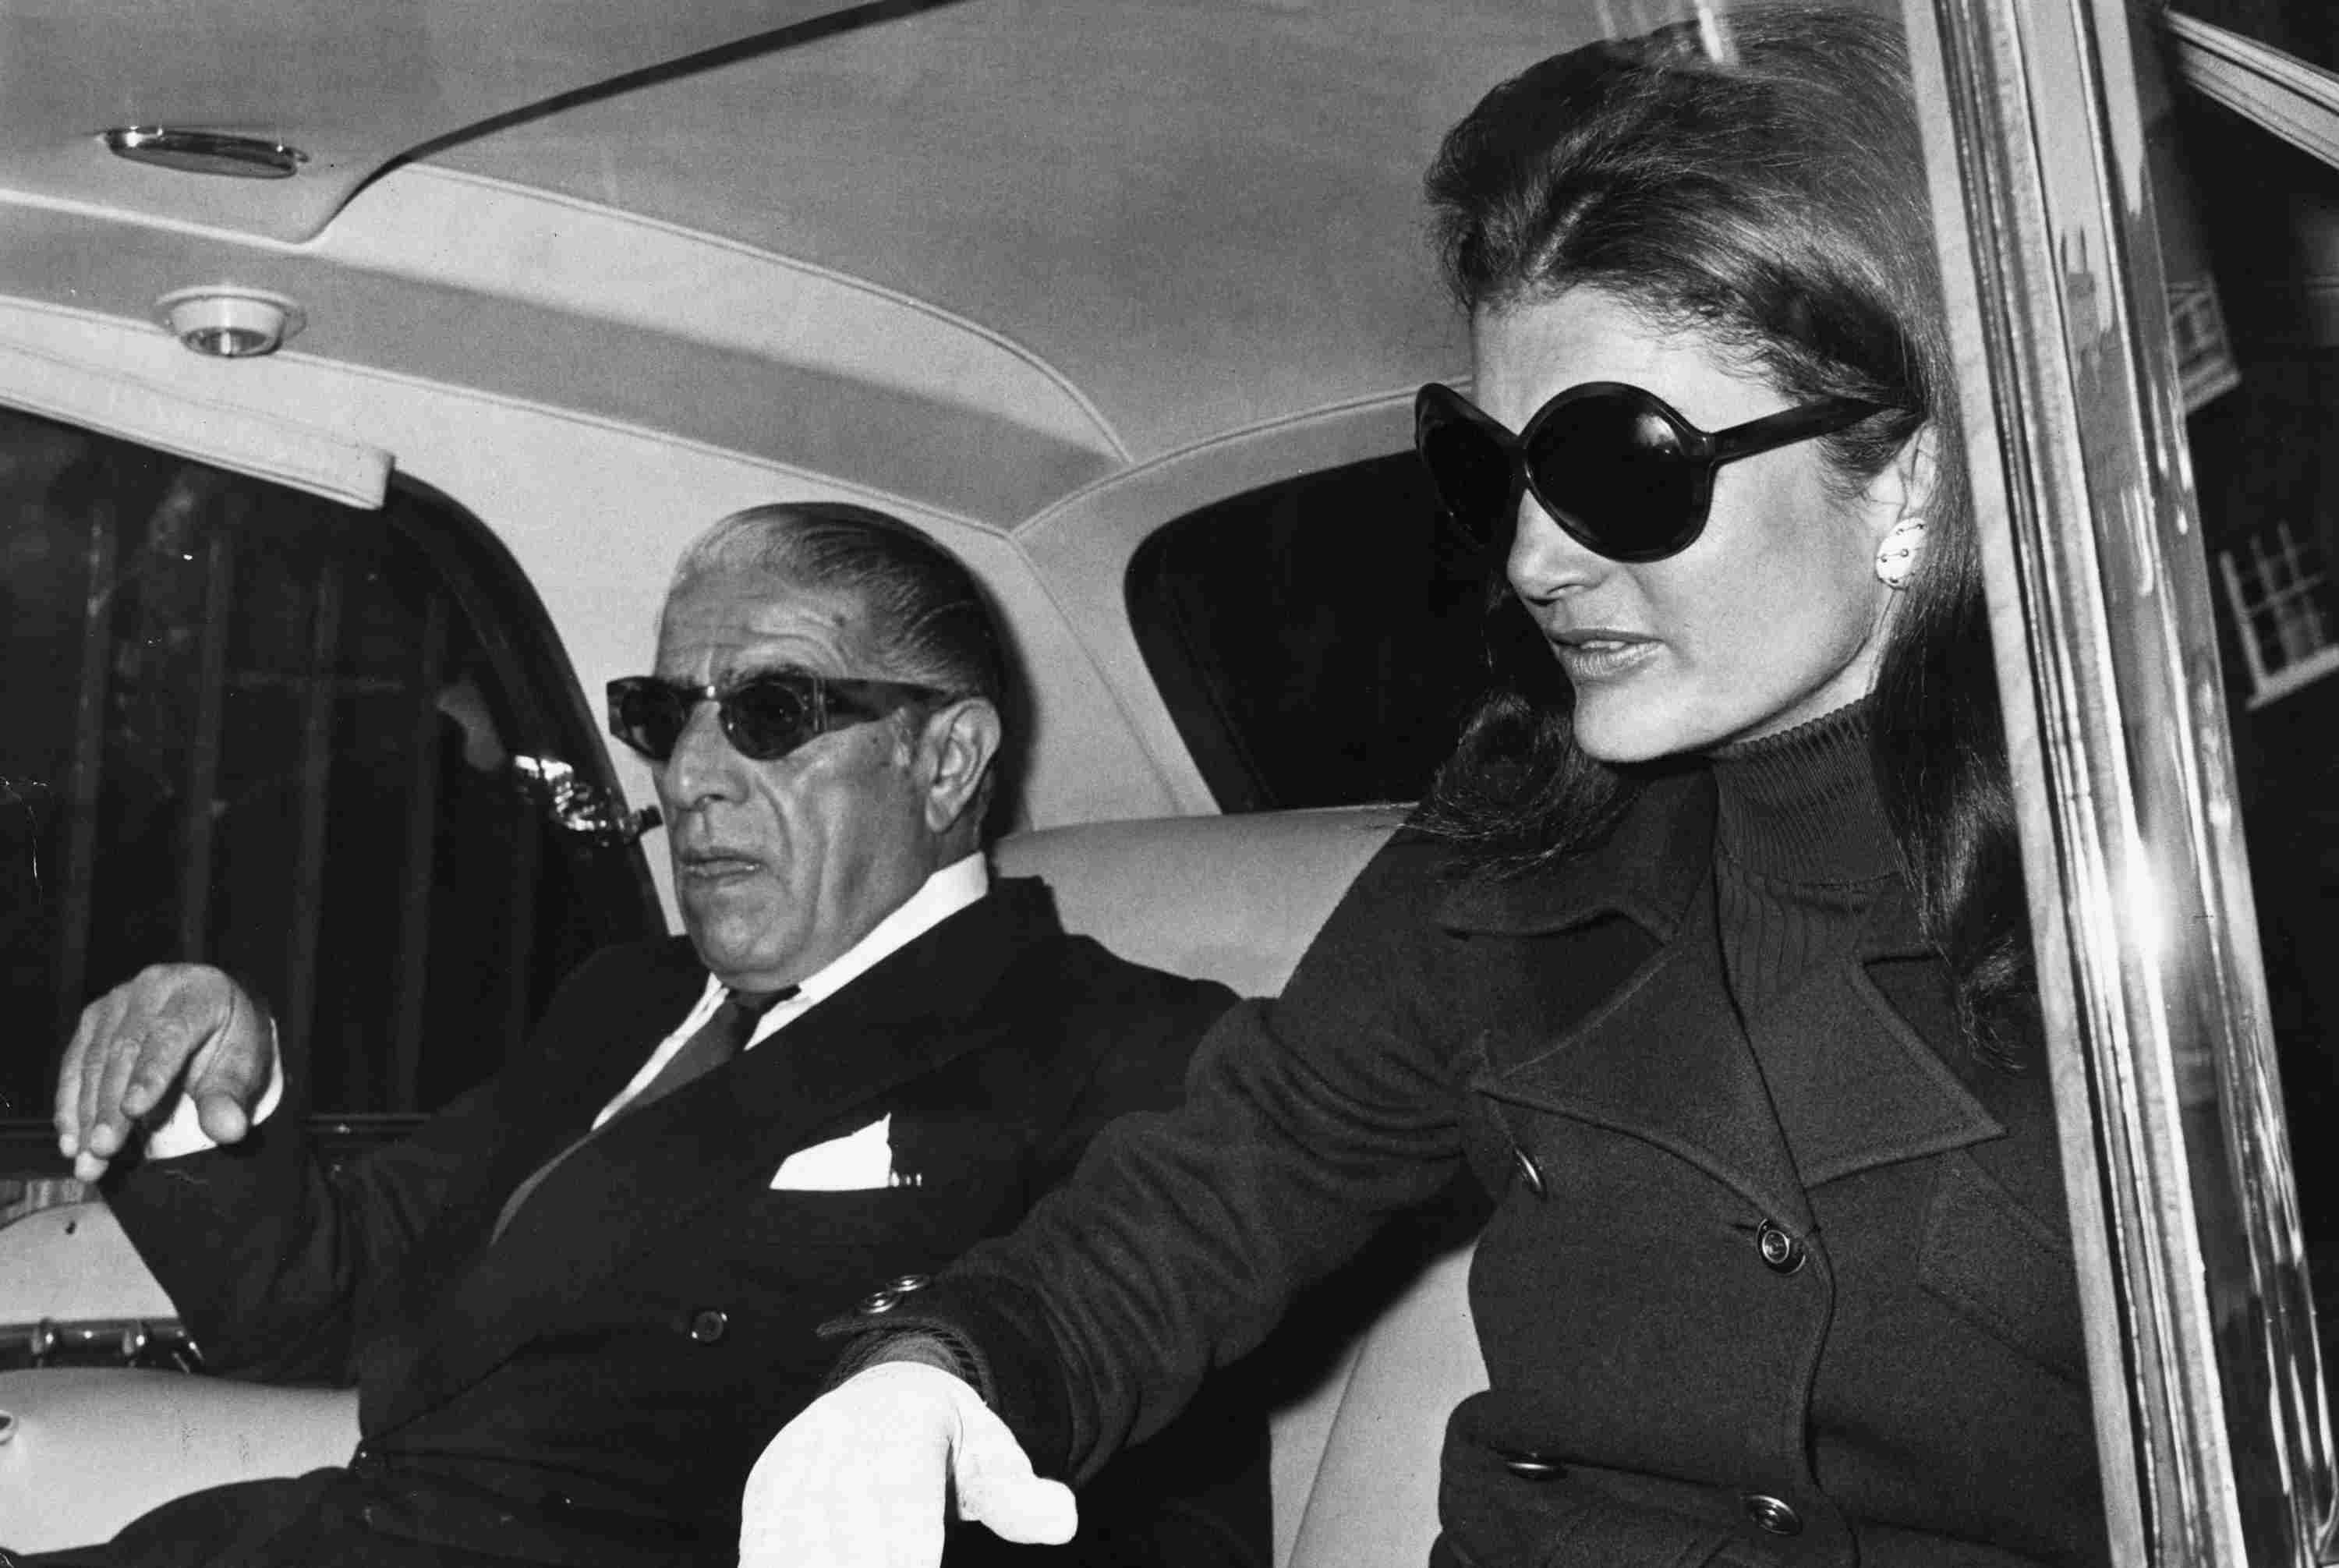 Photograph of Aristotle Onassis and Jacqueline Kennedy Onassis